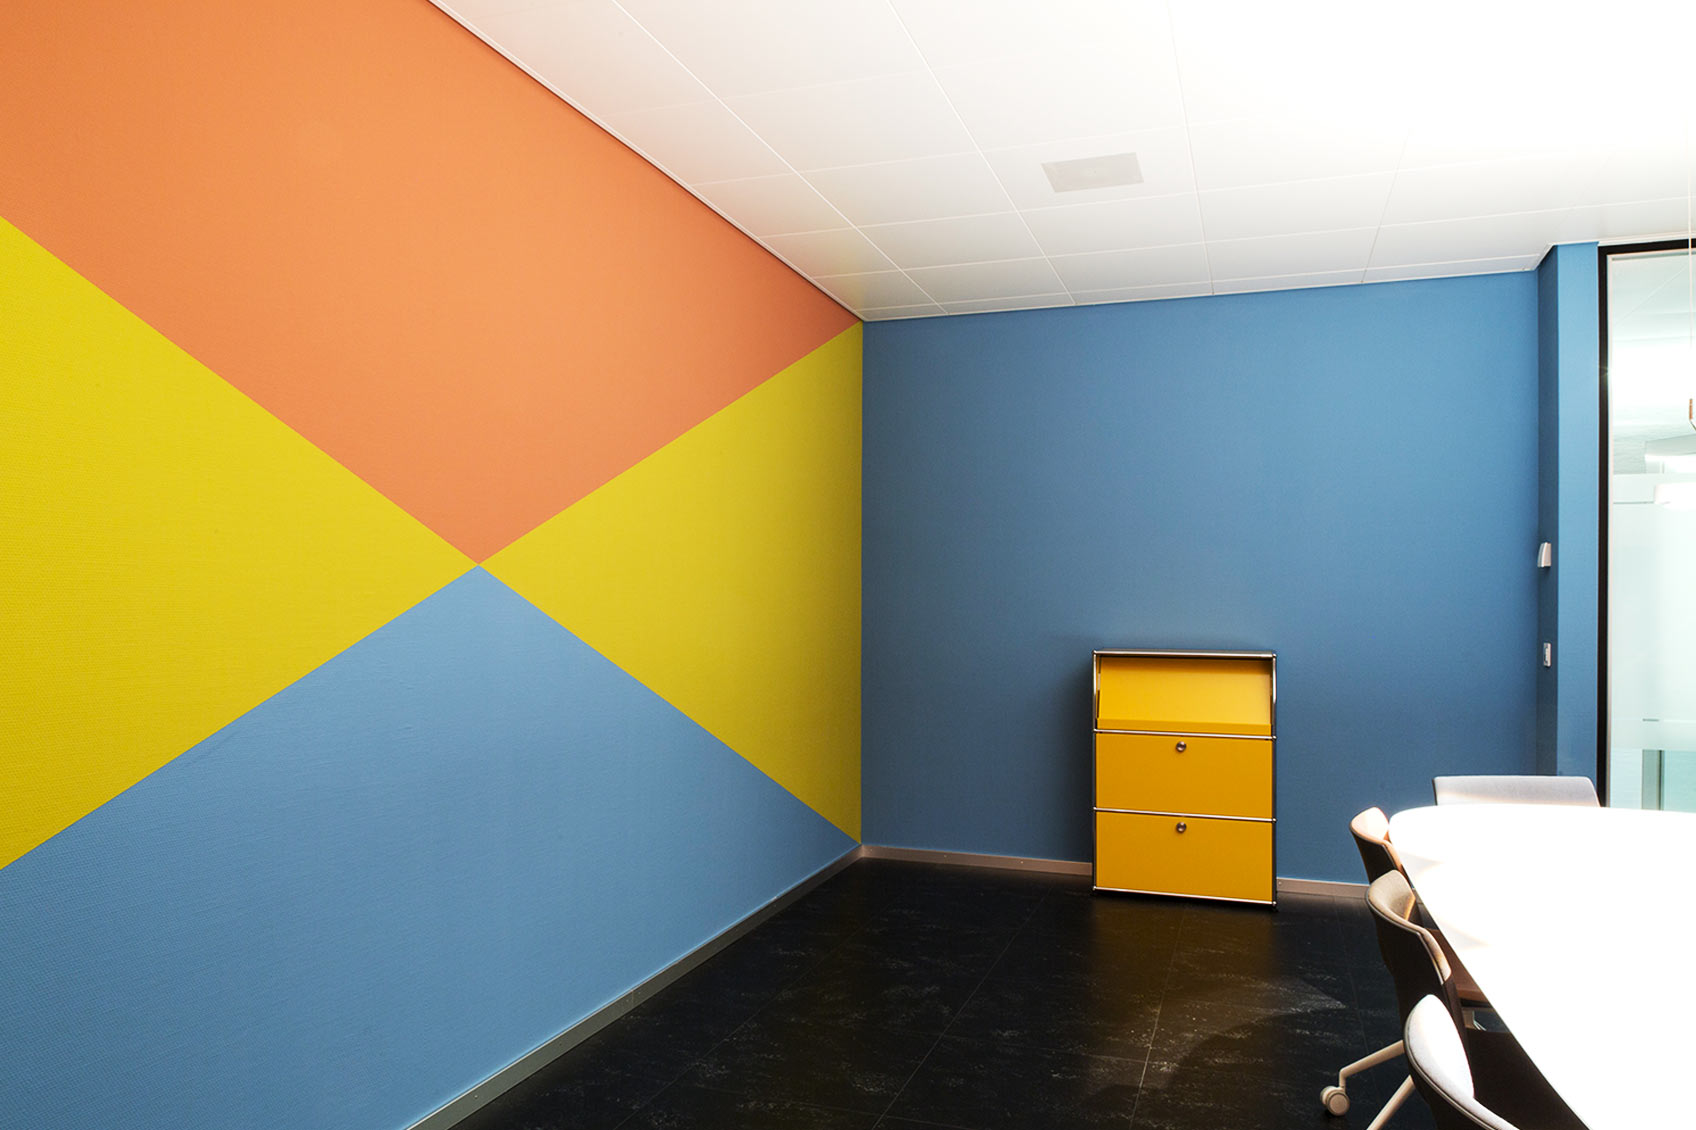 Colour design meeting room ©Hannah Grüninger